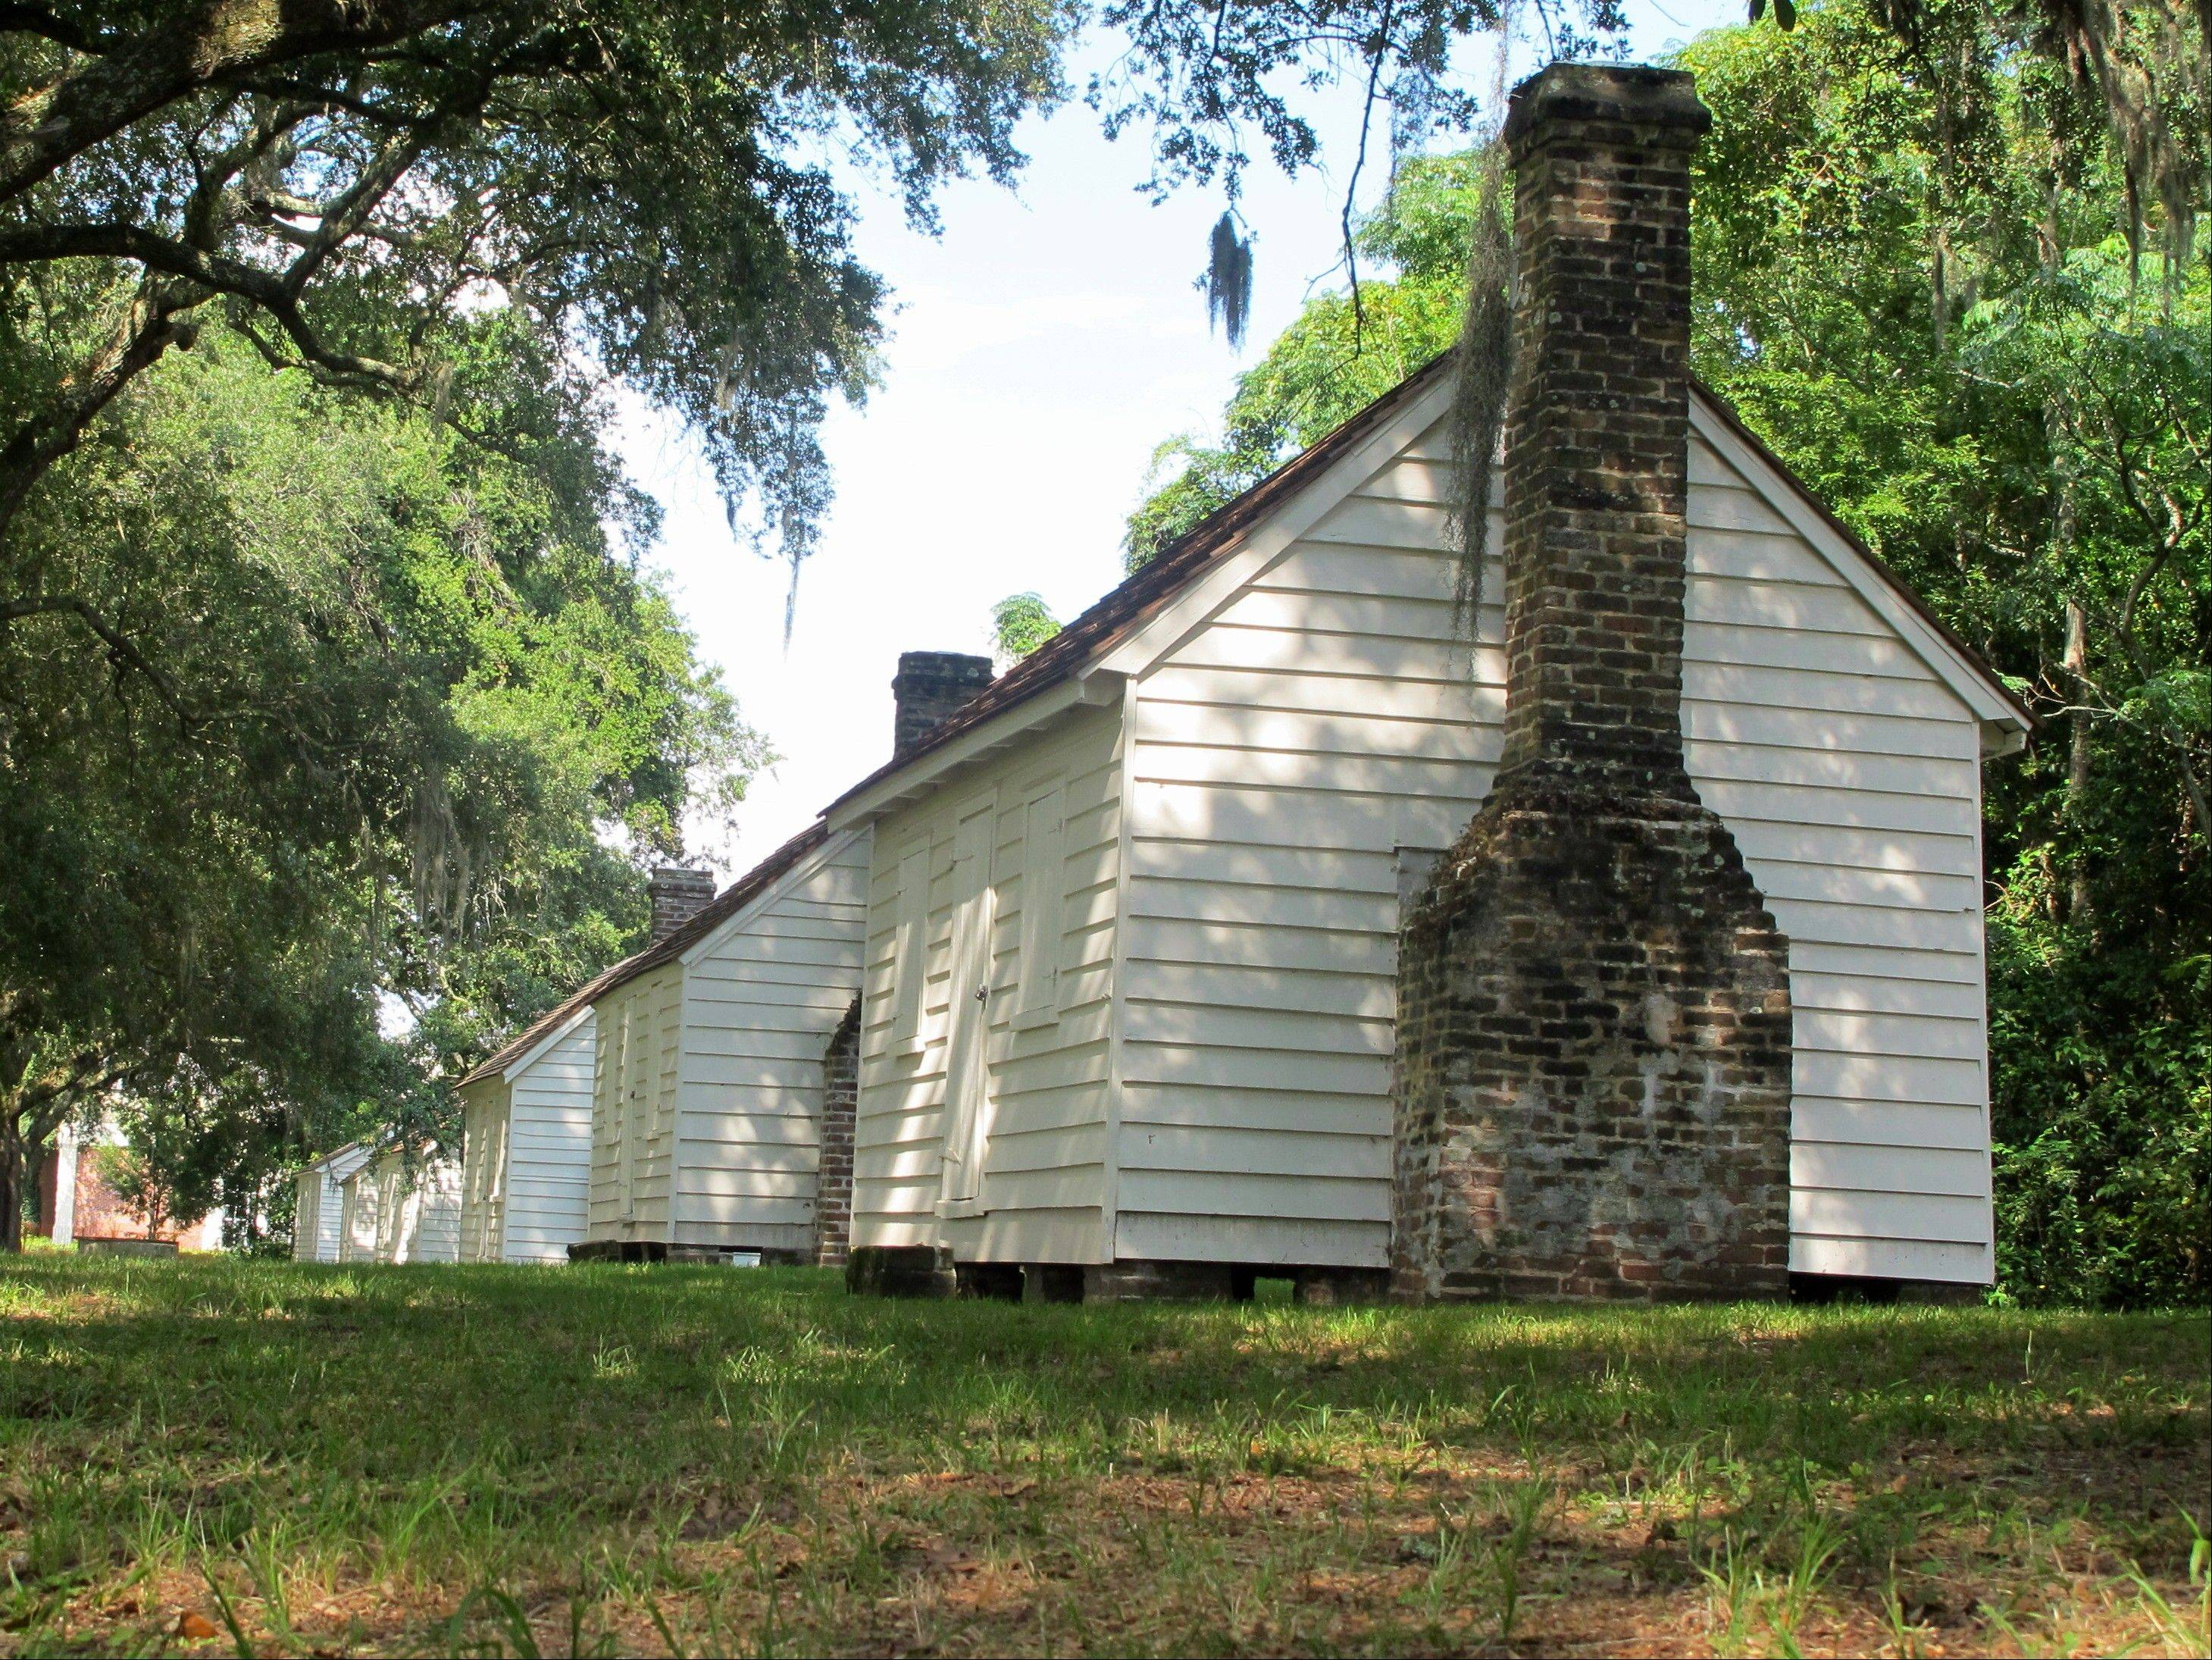 Associated PressA row of slave cabins sit empty at McLeod Plantation in Charleston, S.C. Joe McGill, who works with the National Trust For Historic Preservation, has slept in old slave dwellings in a dozen states during the past three years as part of the Slave Dwelling Project to draw attention to the need to preserve the structures.